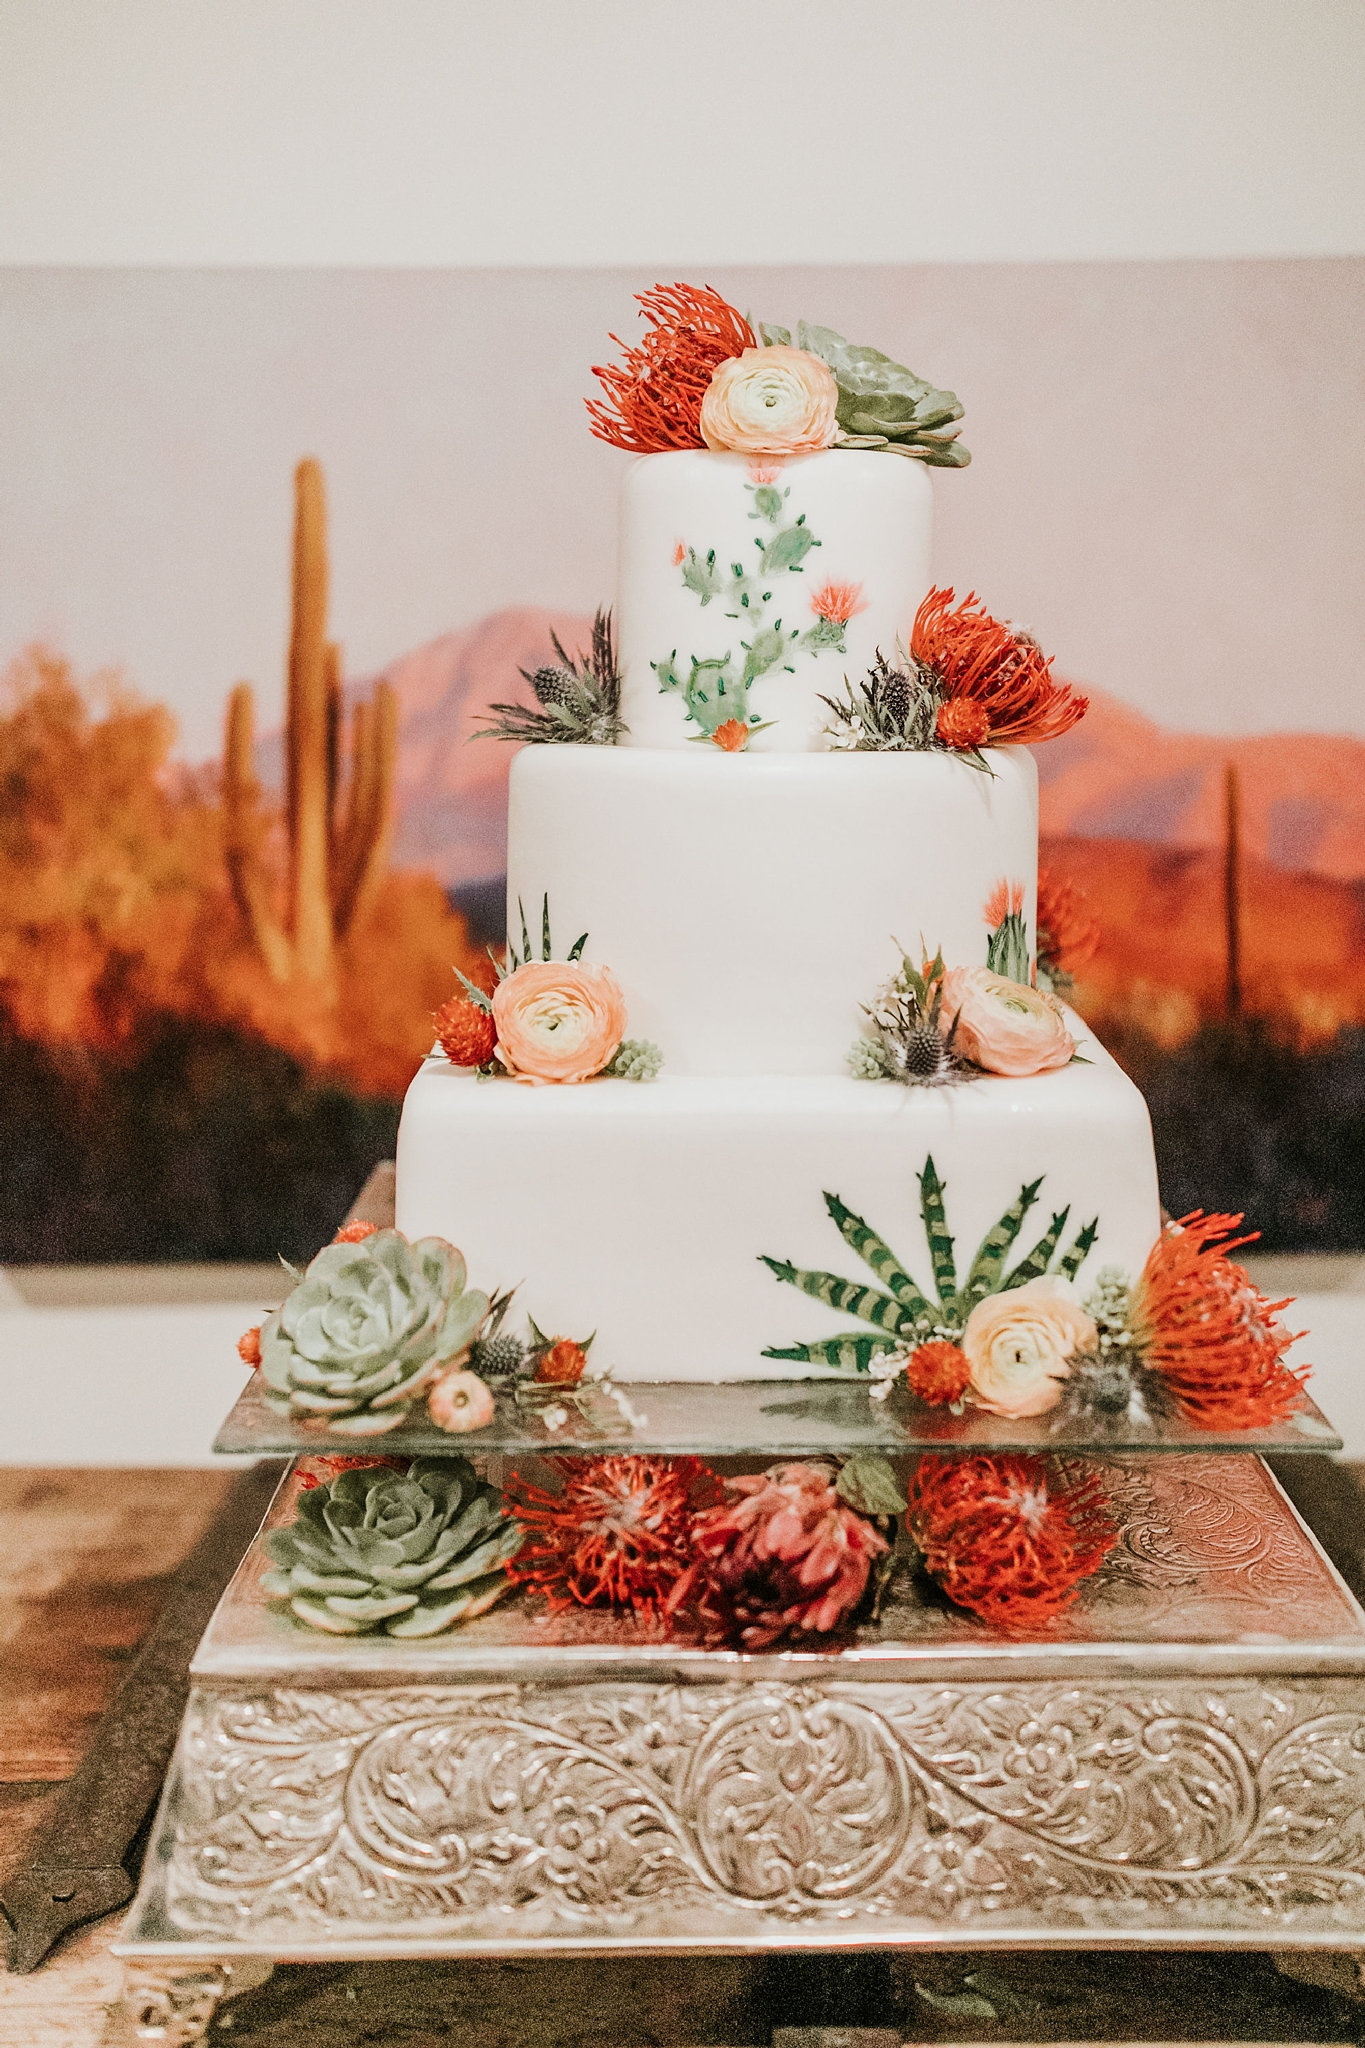 Alicia+lucia+photography+-+albuquerque+wedding+photographer+-+santa+fe+wedding+photography+-+new+mexico+wedding+photographer+-+new+mexico+wedding+-+new+mexico+wedding+-+wedding+florals+-+desert+wedding+-+wedding+trends_0020.jpg